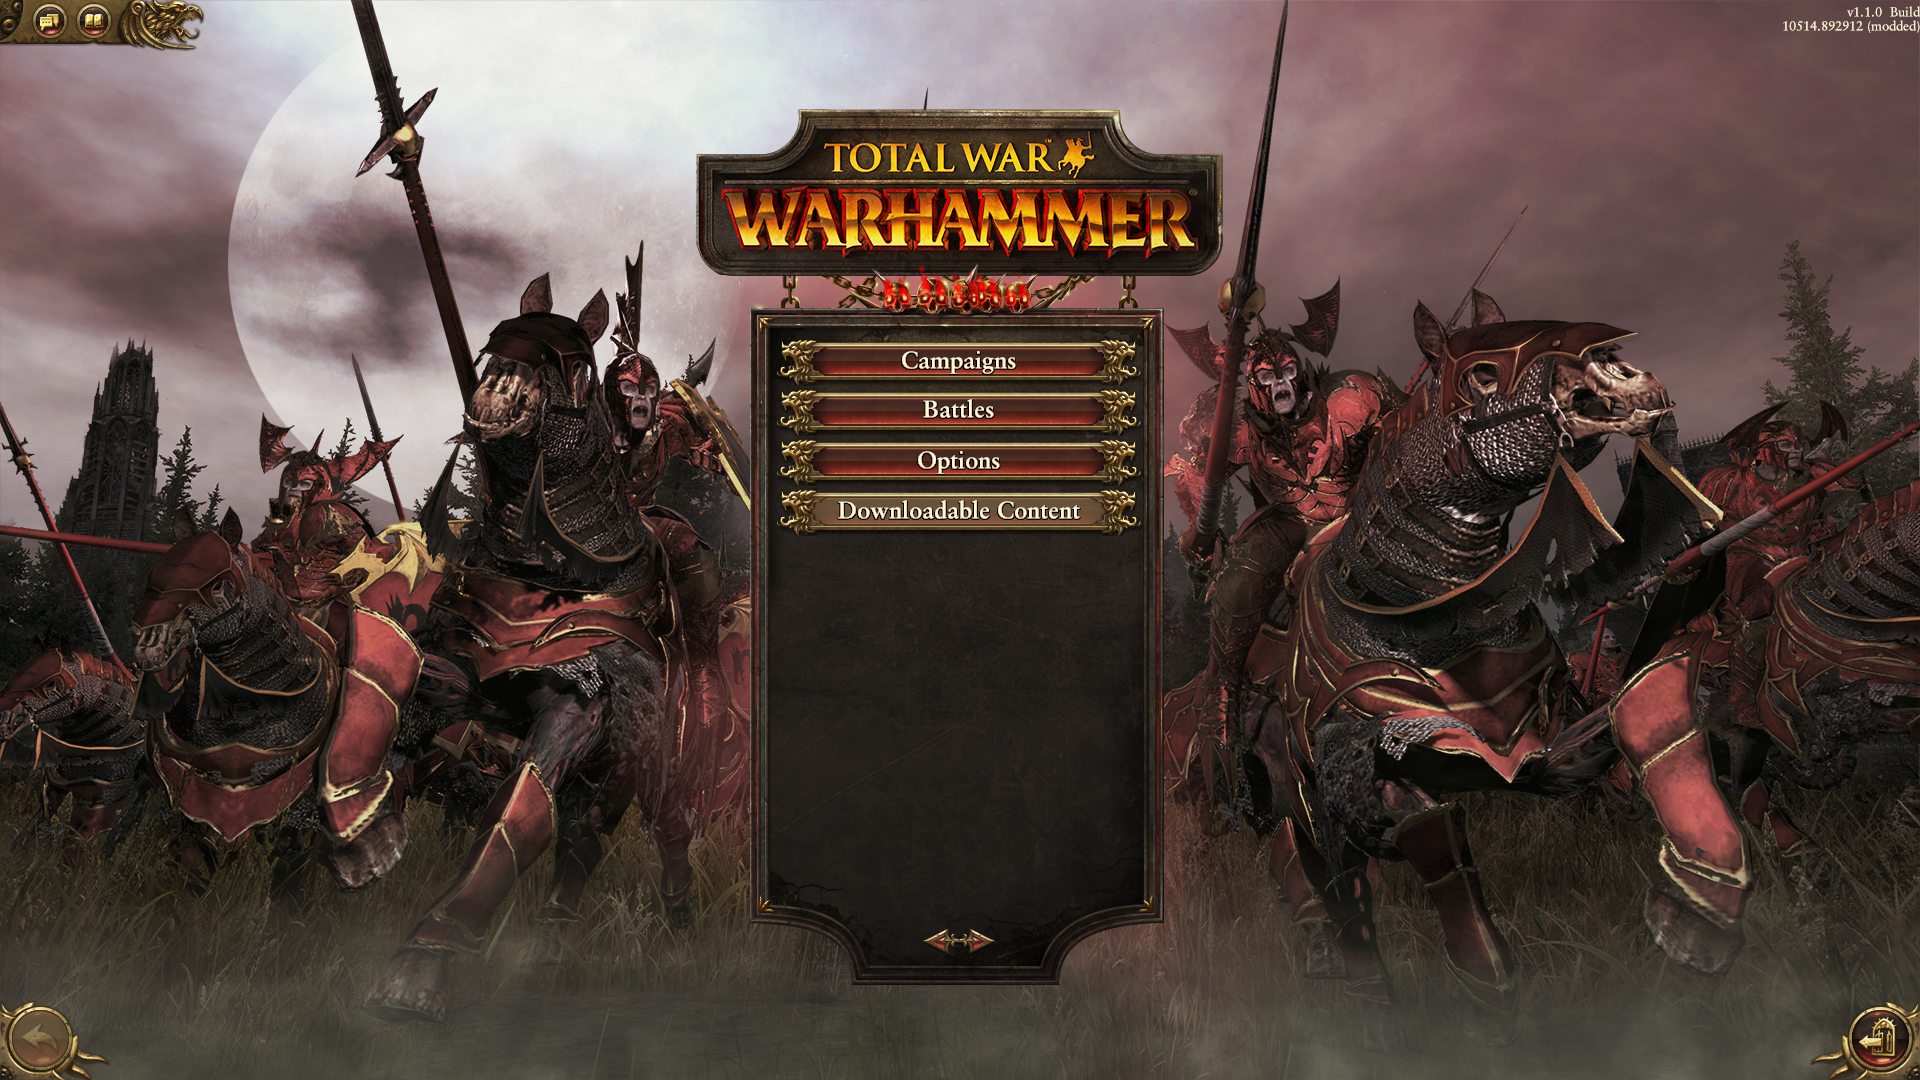 Yellow coulour on user faction — Total War Forums